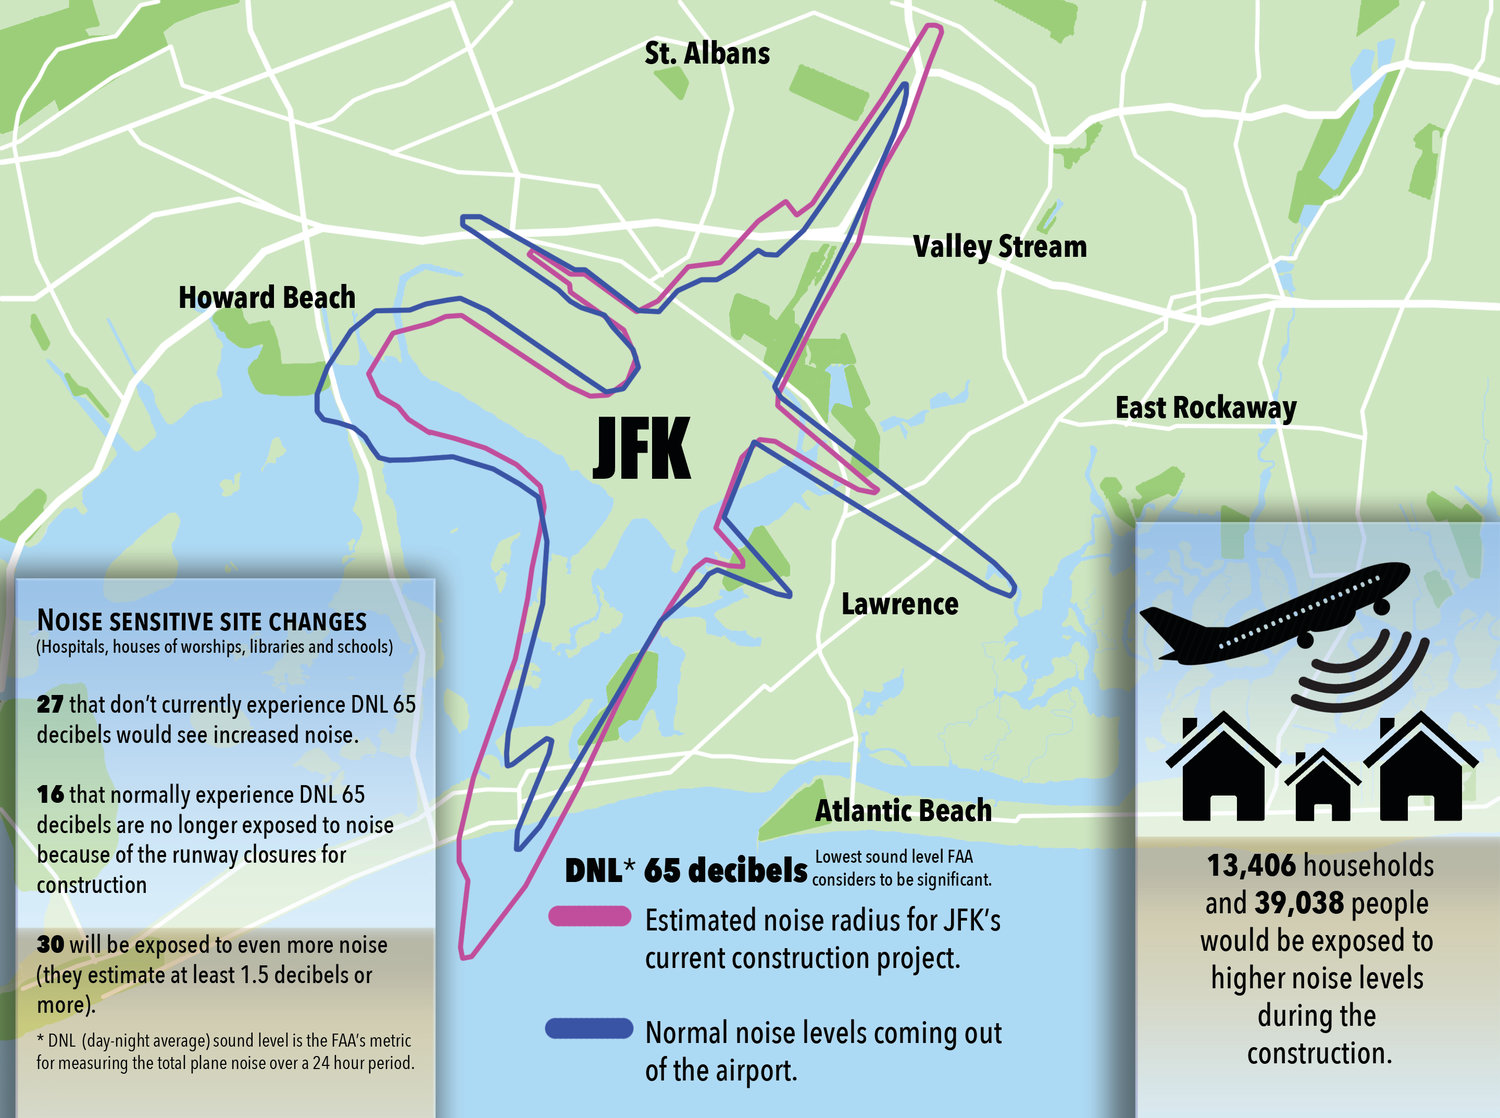 Map Of New York Showing Jfk Airport.Valley Stream Hit With More Plane Noise As Jfk Runway Construction